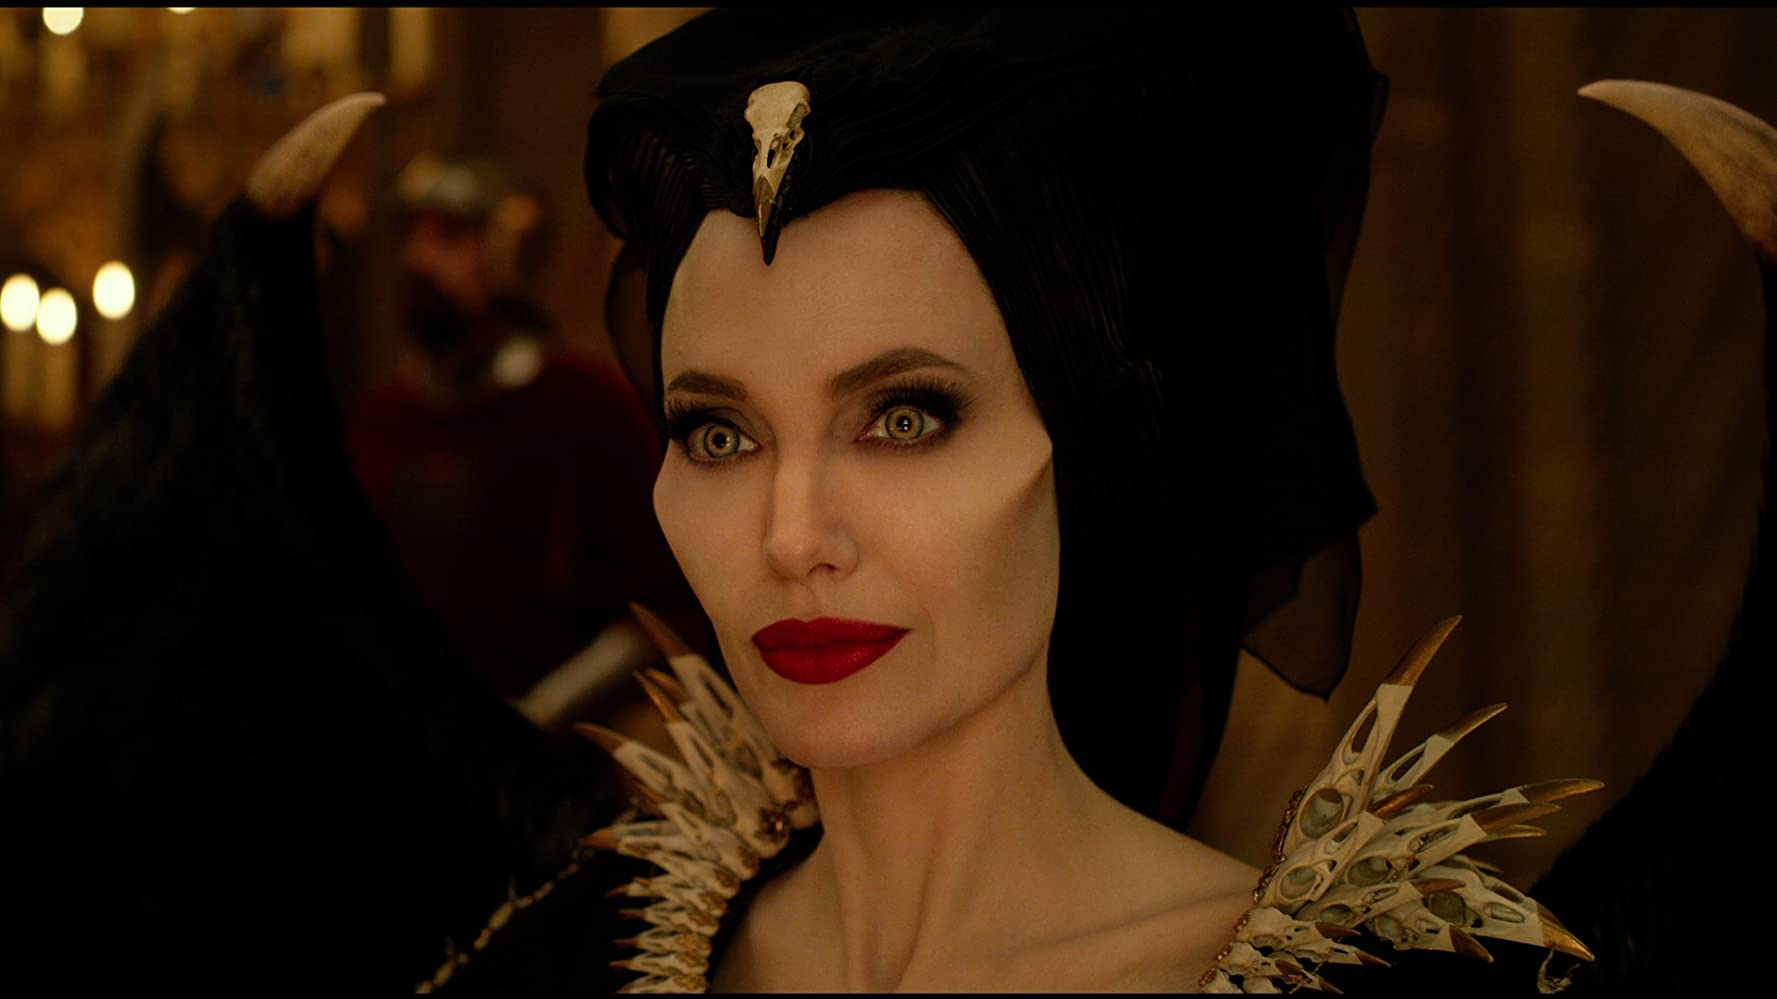 Angelina Jolie in Maleficent: Mistress of Evil (2019)